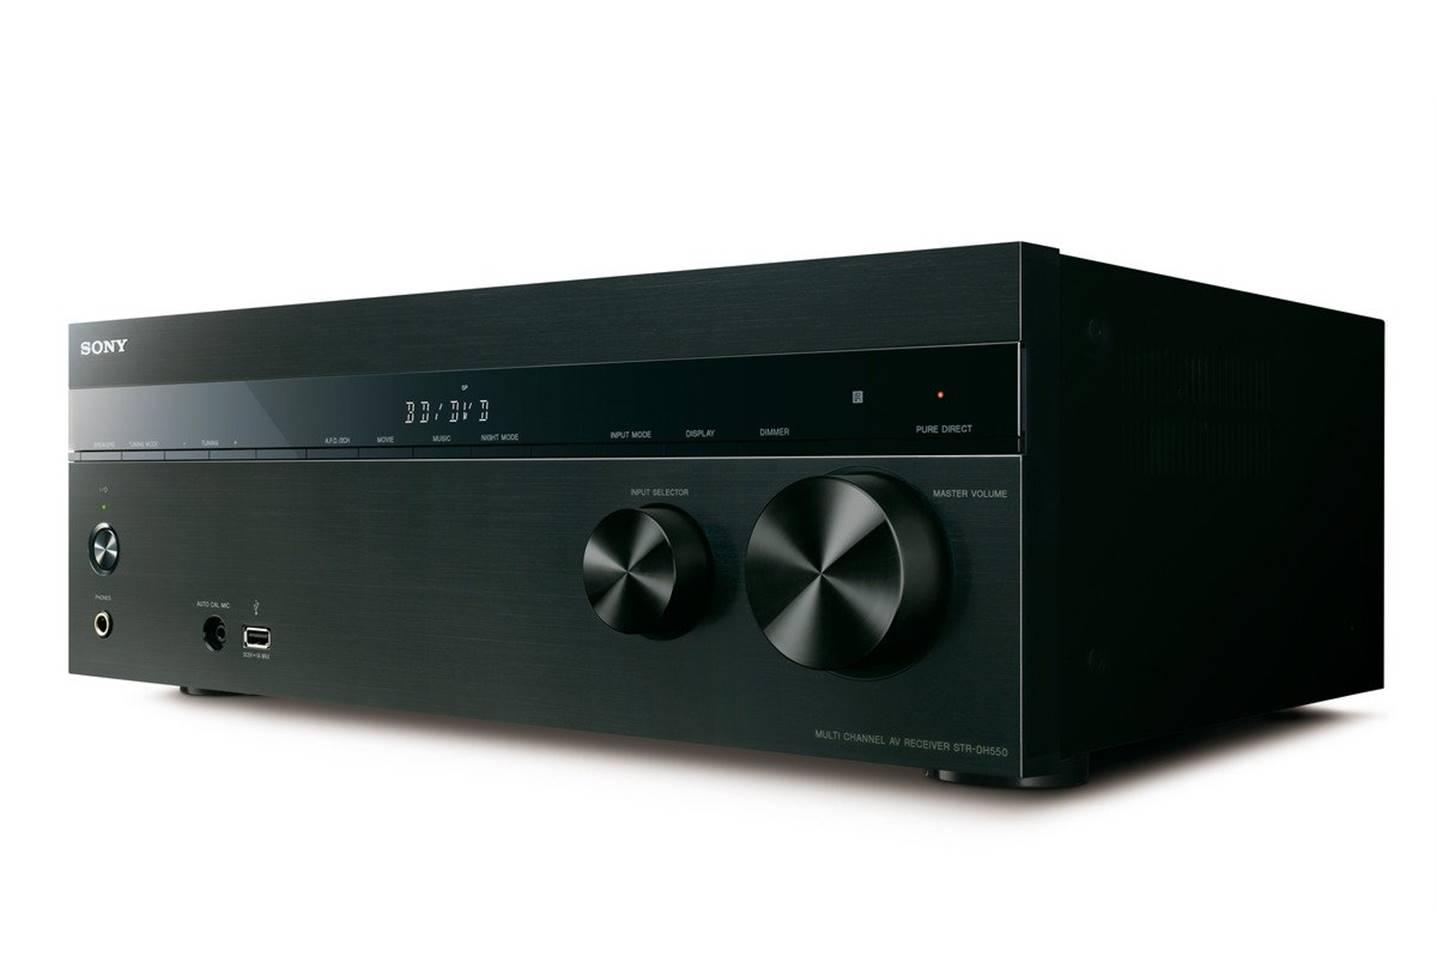 Sony STRDH550 AV Receiver for Home Theater